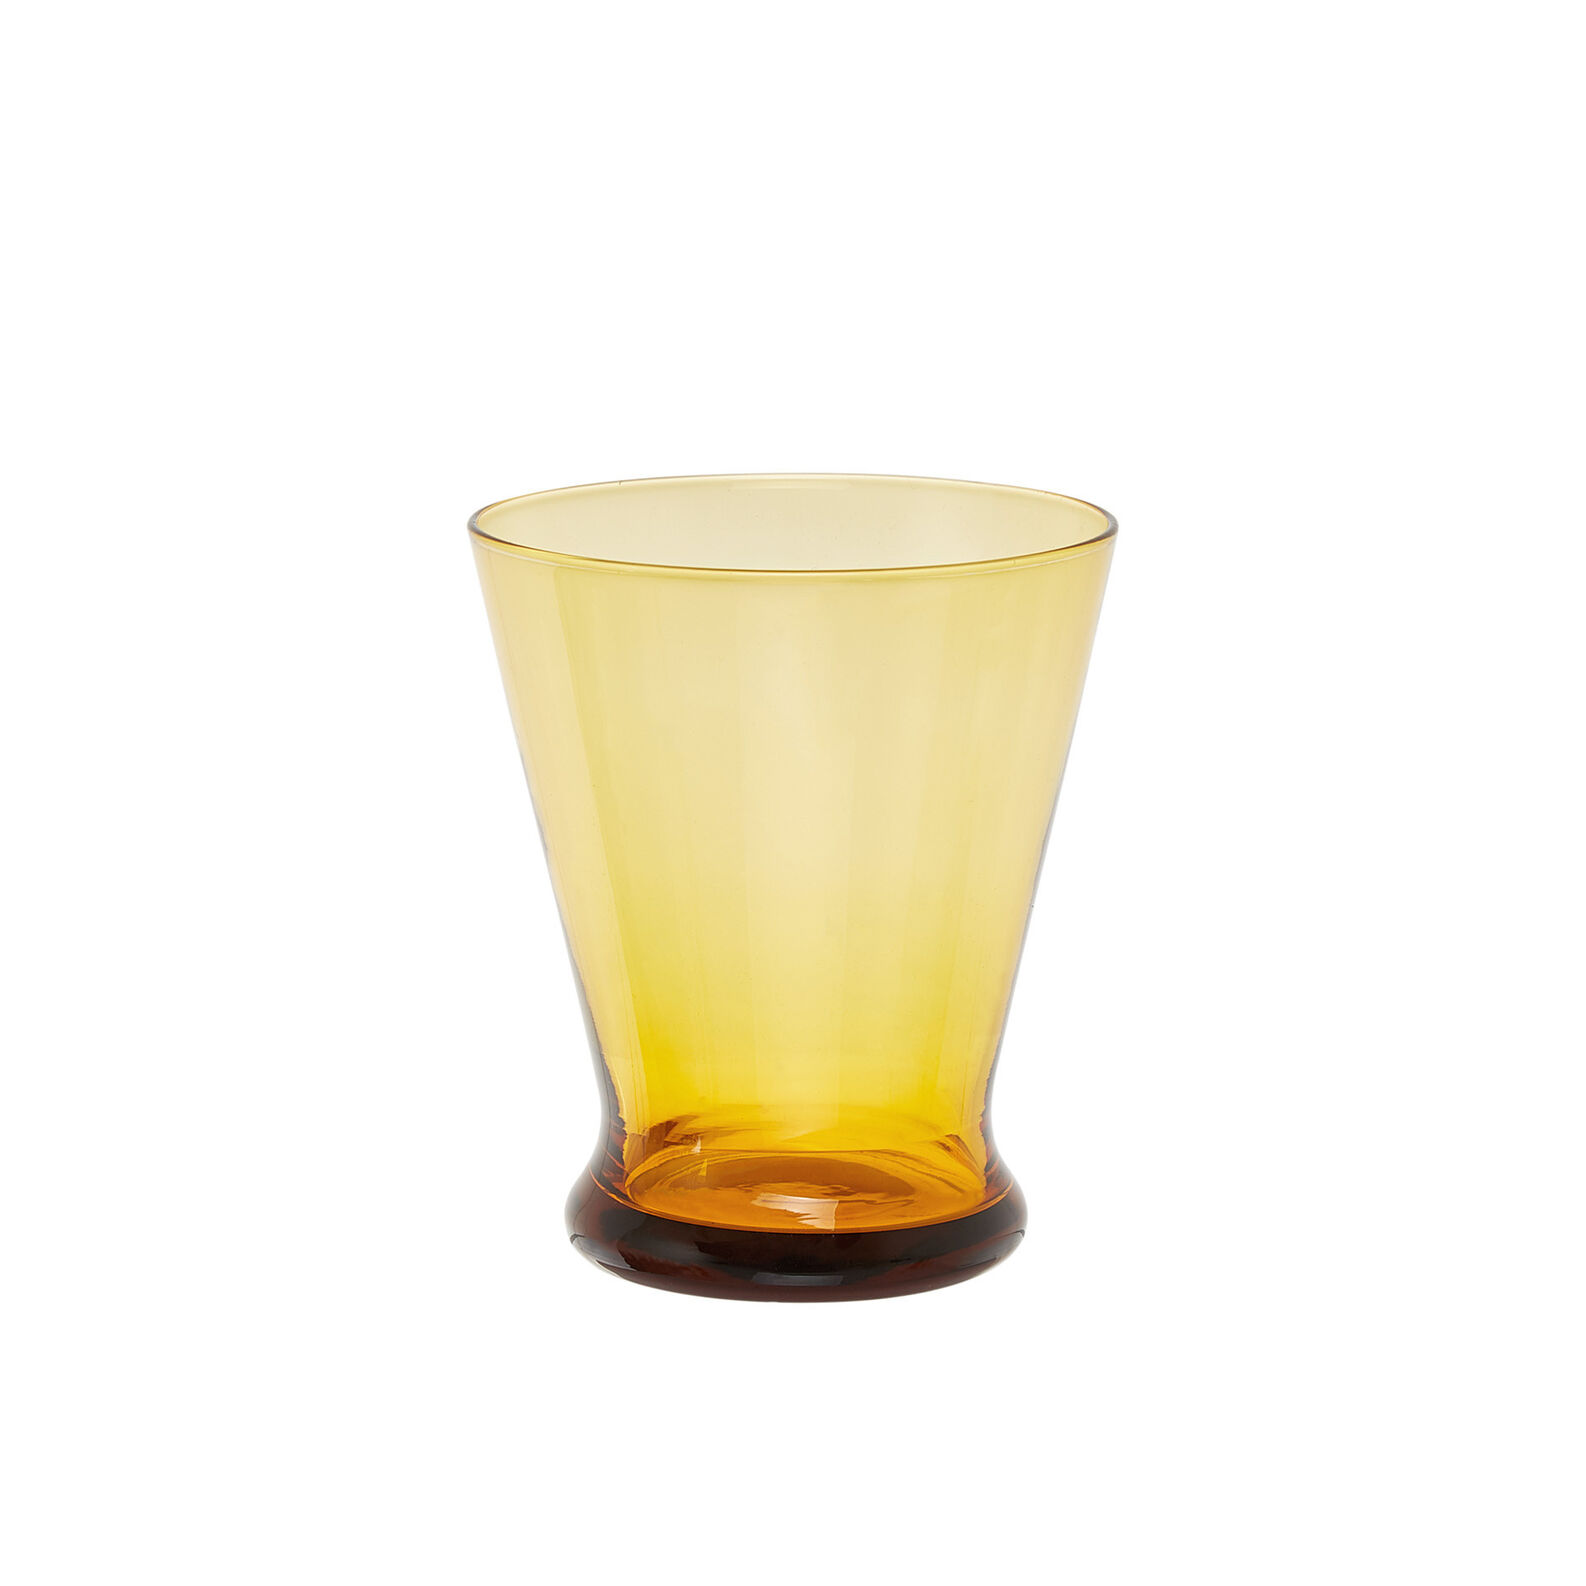 Short-stemmed goblet in coloured glass